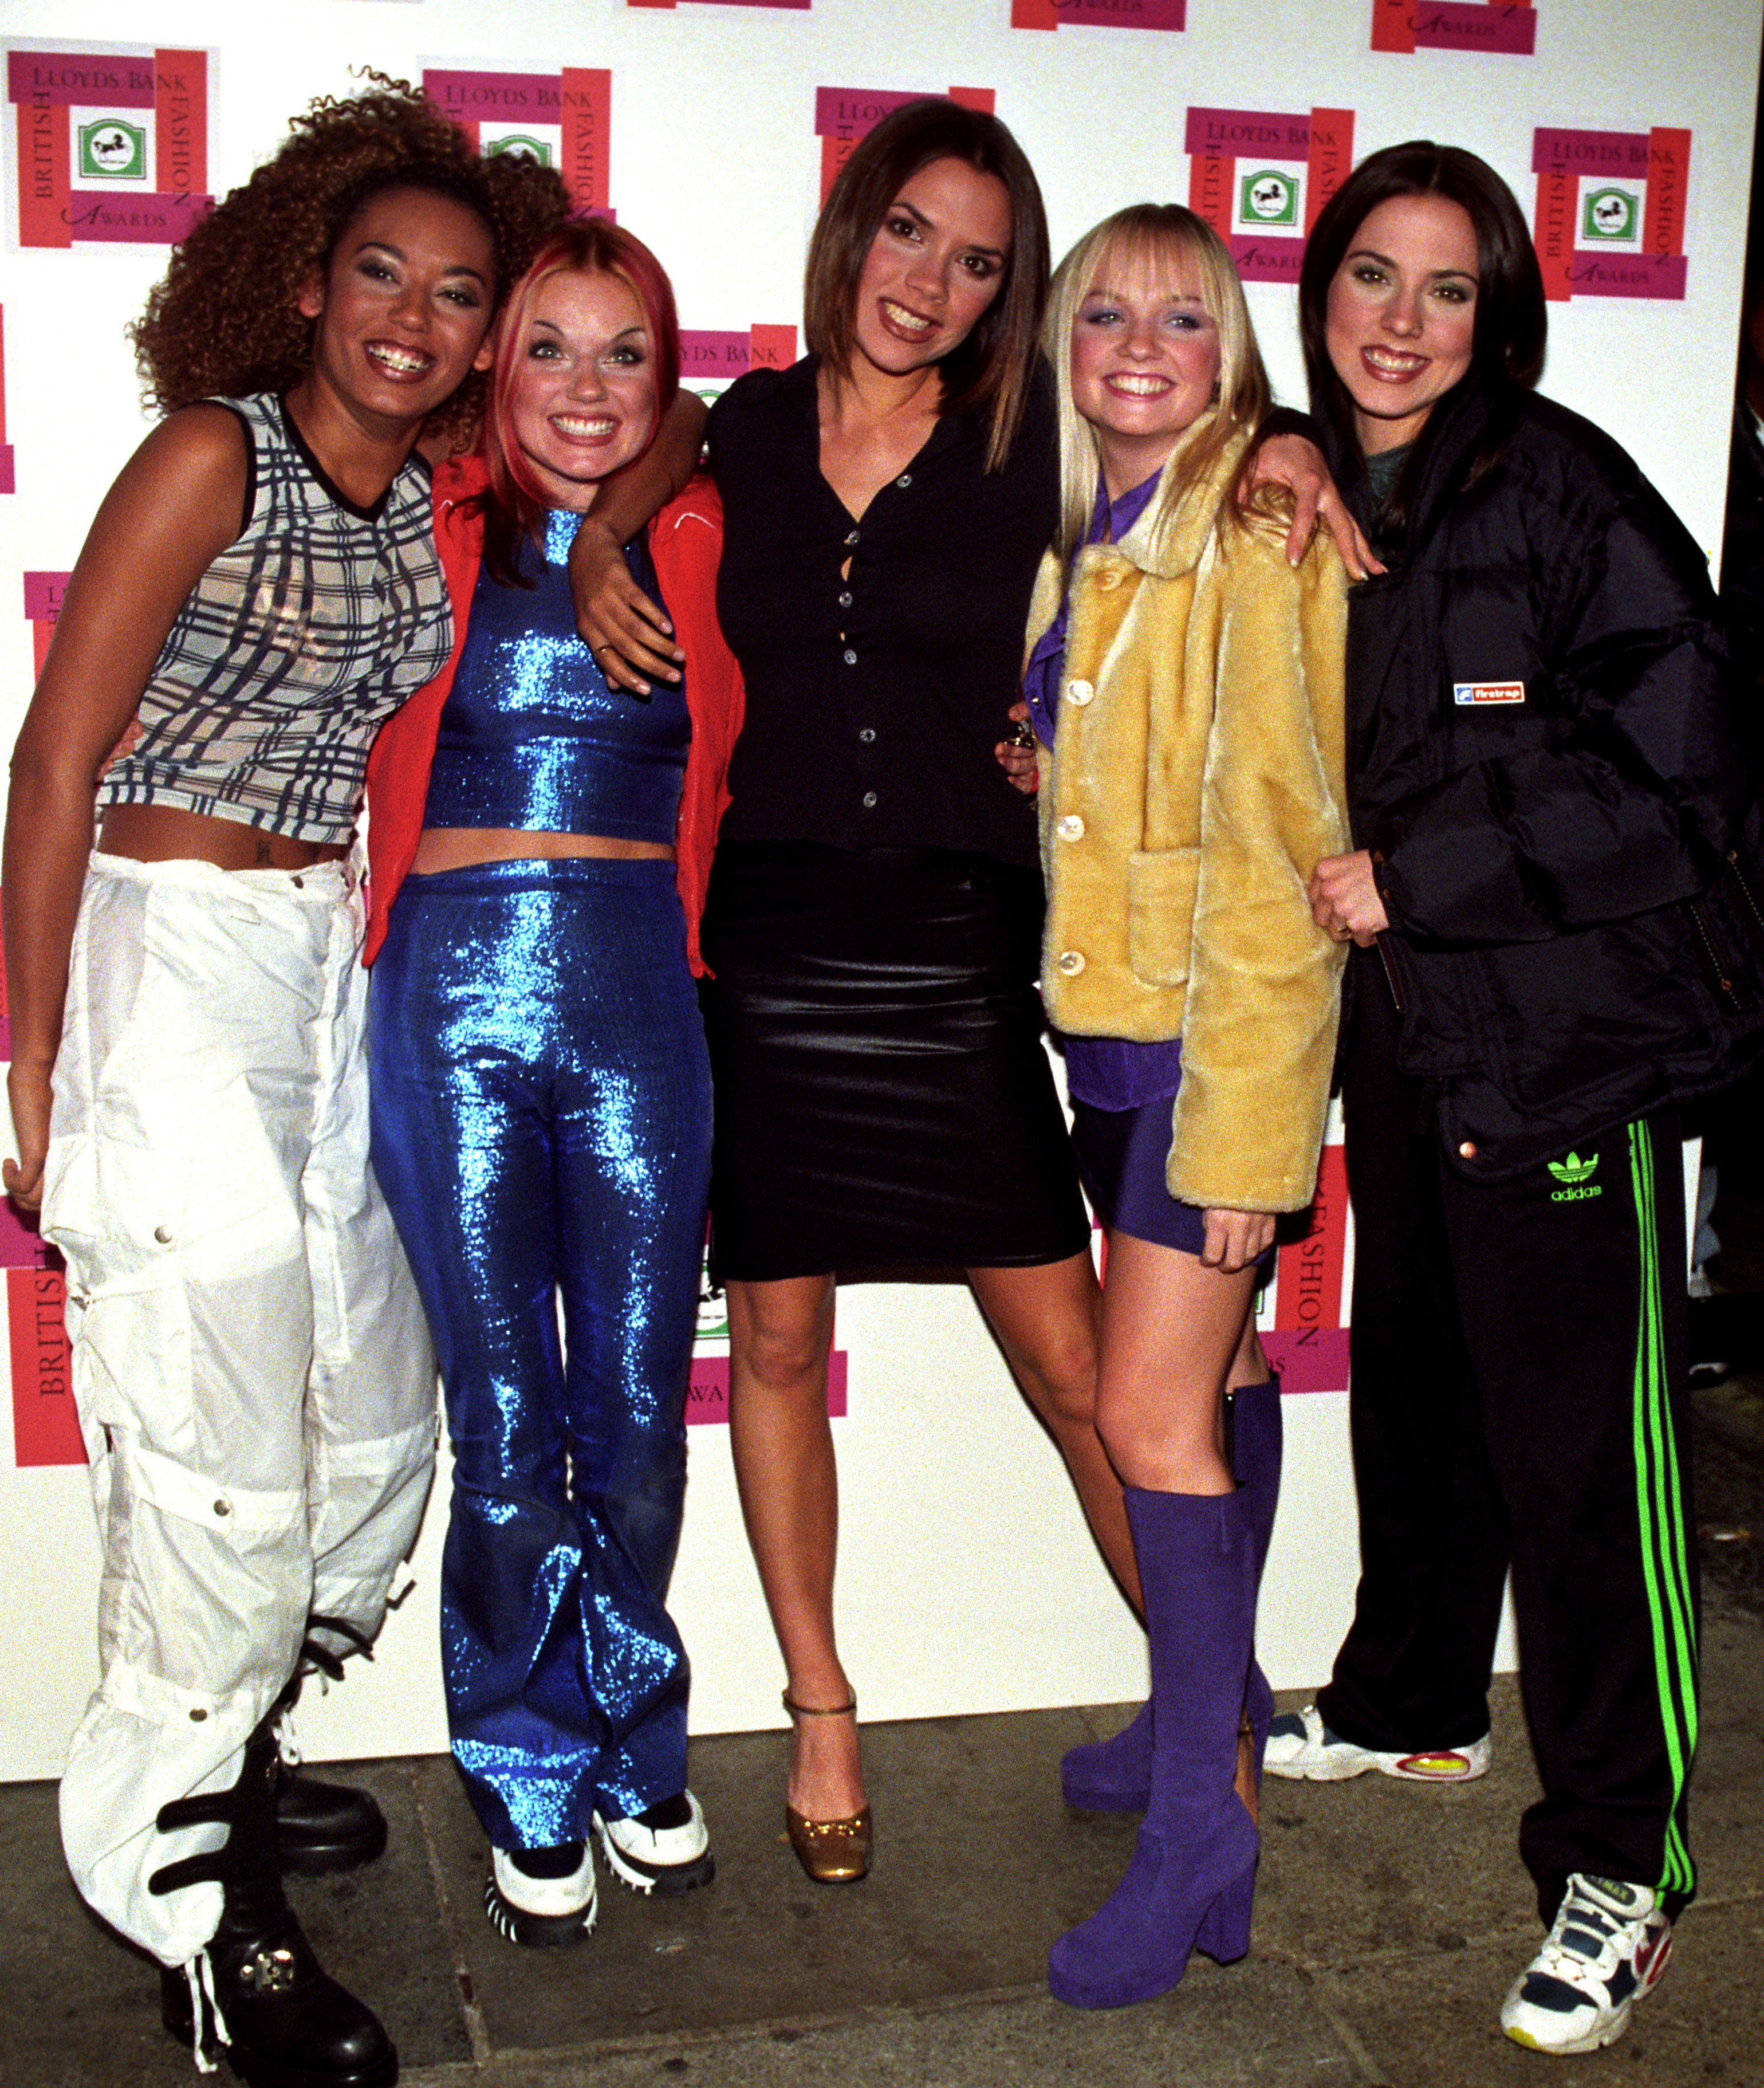 The Spice Girls in 1996